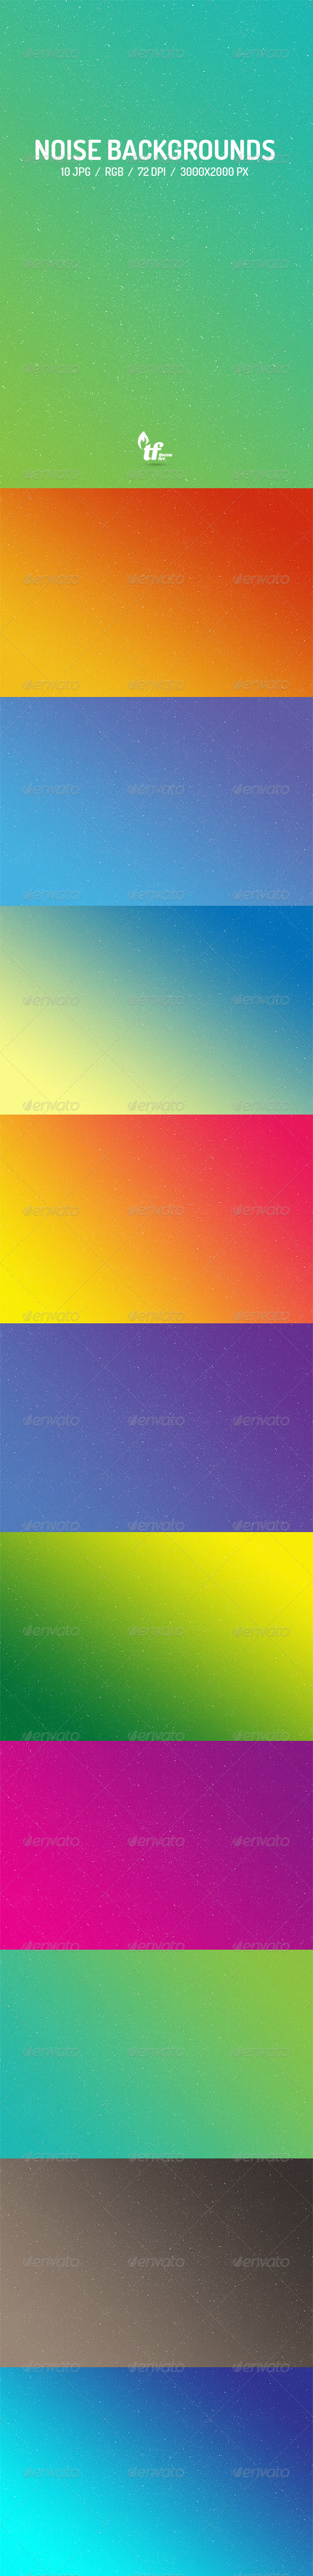 GraphicRiver 10 Noise Backgrounds 8436013